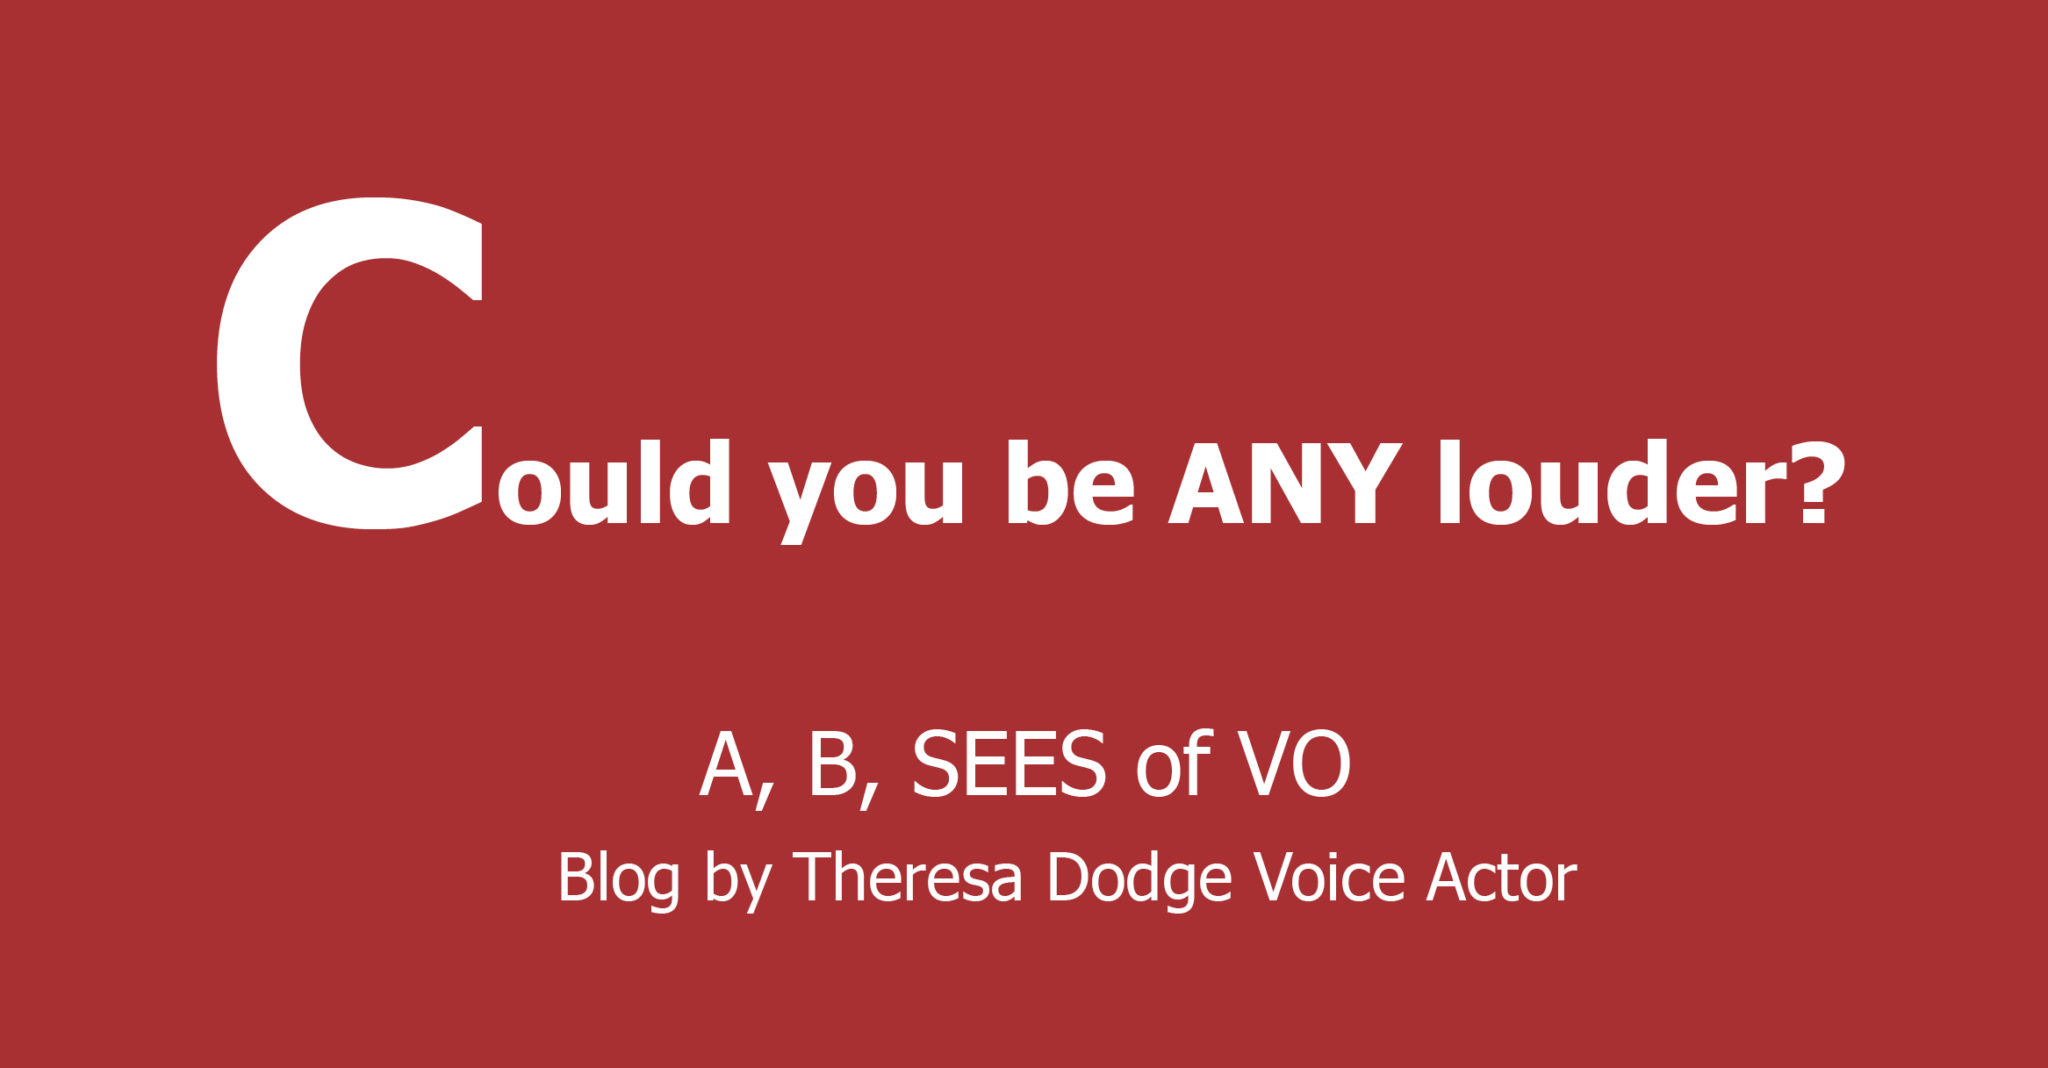 Could You Be ANY Louder? A, B, SEES of VO Blog by Theresa Dodge, Voice Actor